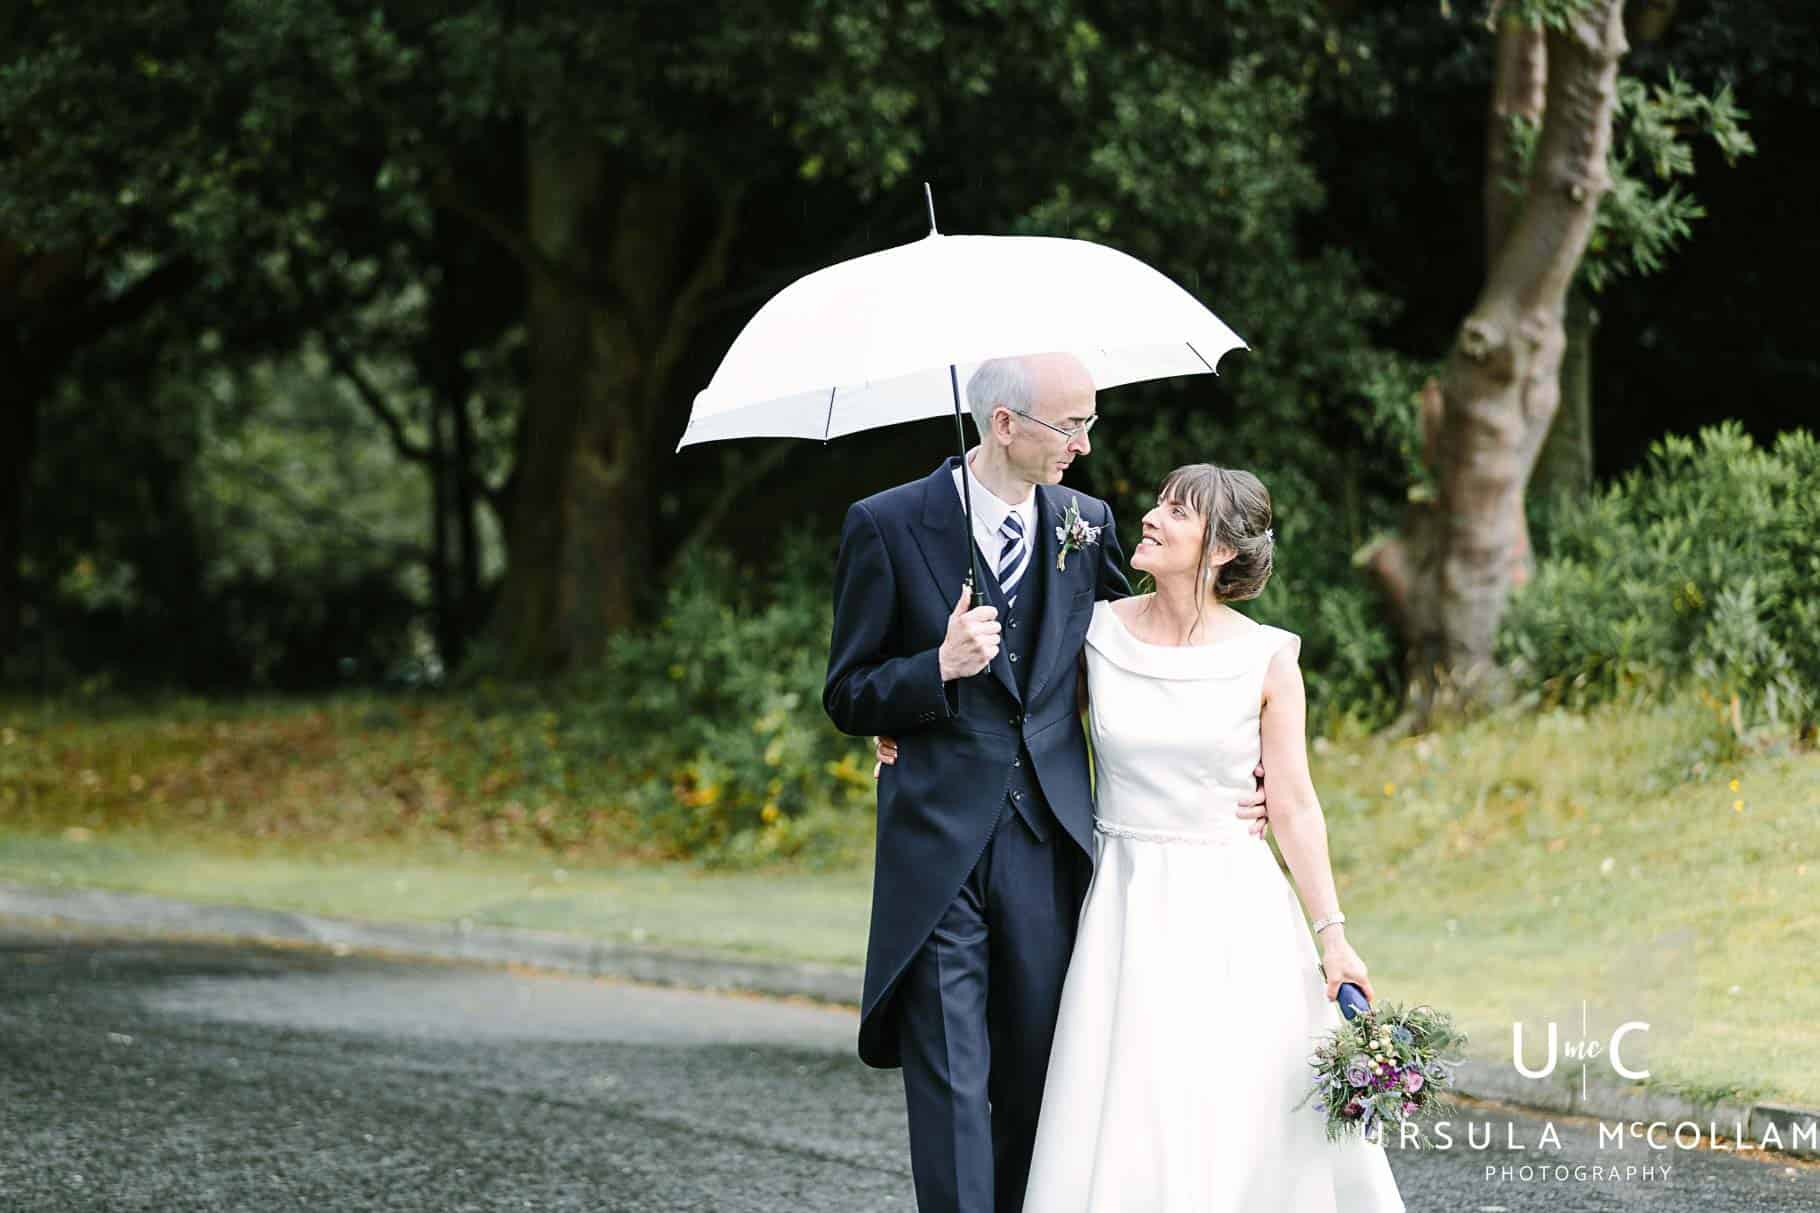 Bride and Groom walking along under a white umbrella